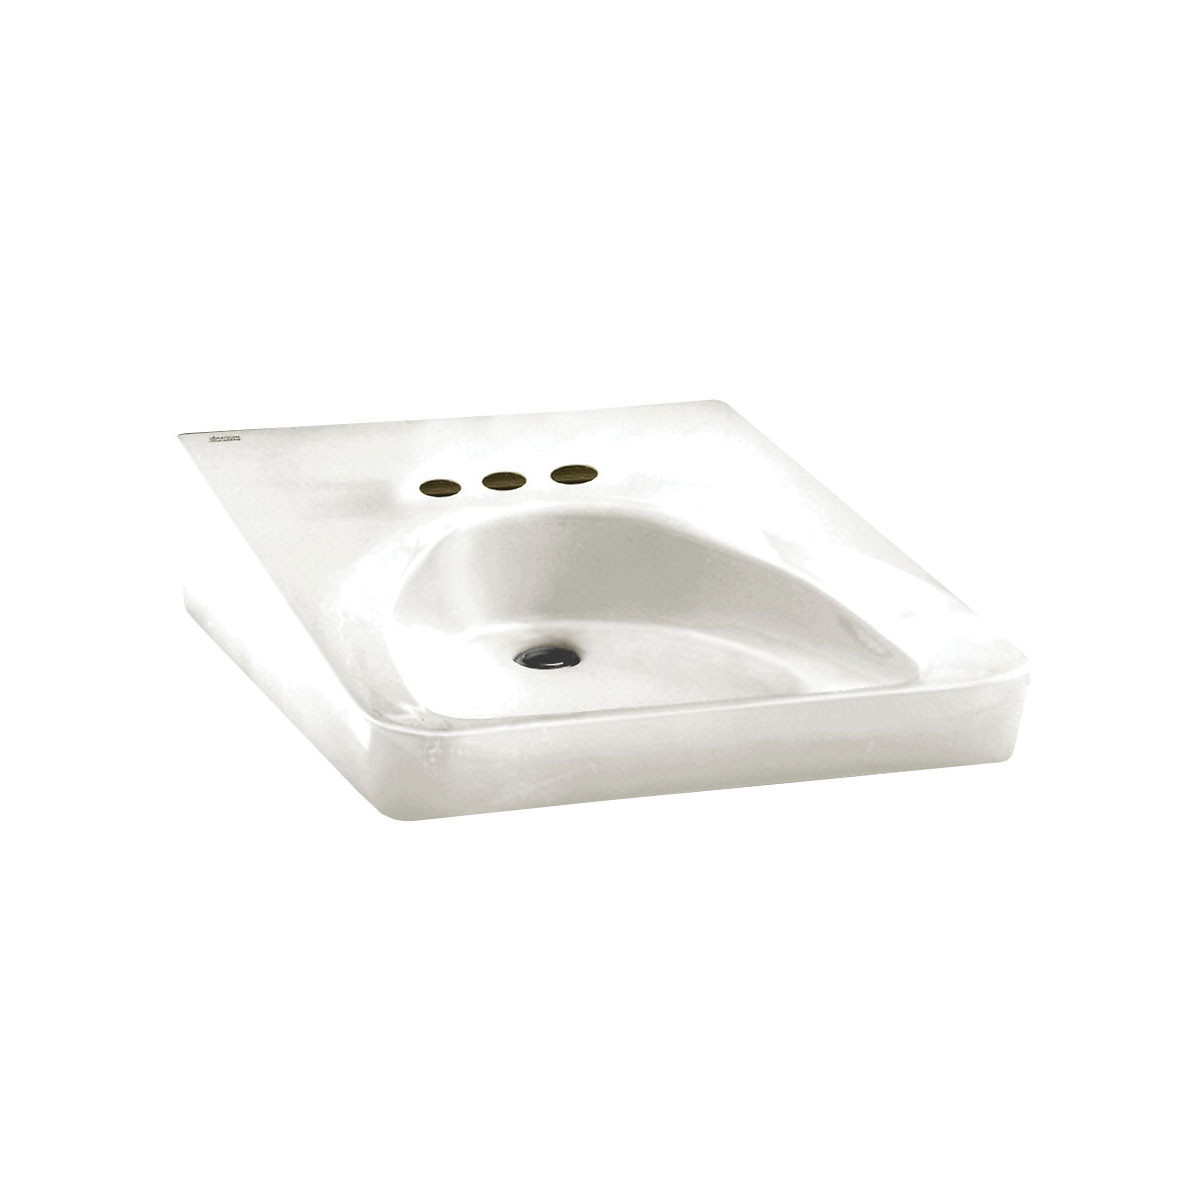 American Standard 9141.011.020 Wheelchair Users Bathroom Sink With Front Overflow, Rectangular, 4 in Faucet Hole Spacing, 20 in W x 27 in H